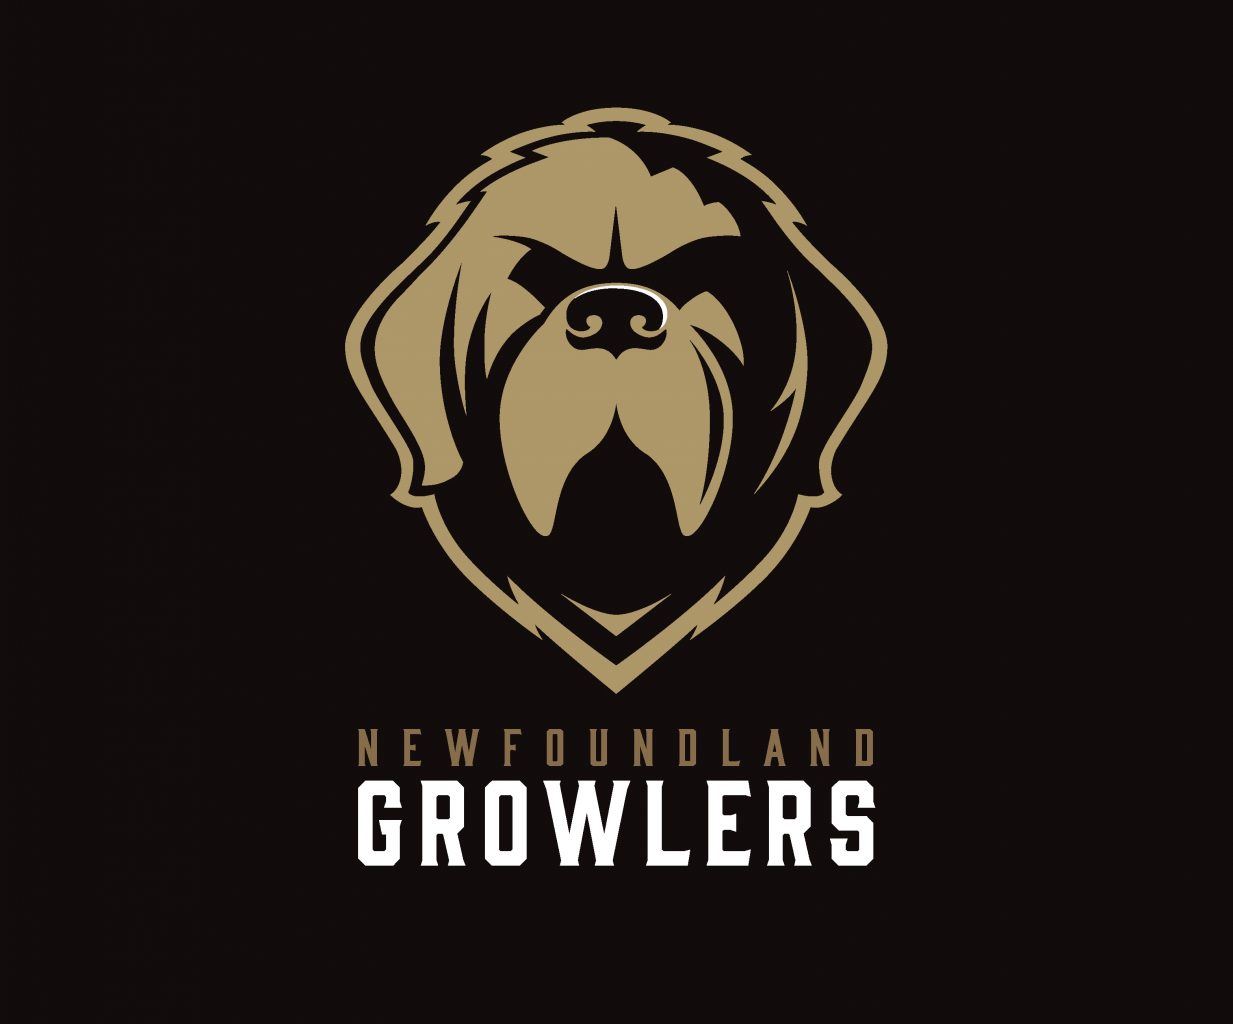 NL GROWLERS VS. BRAMPTON BEAST